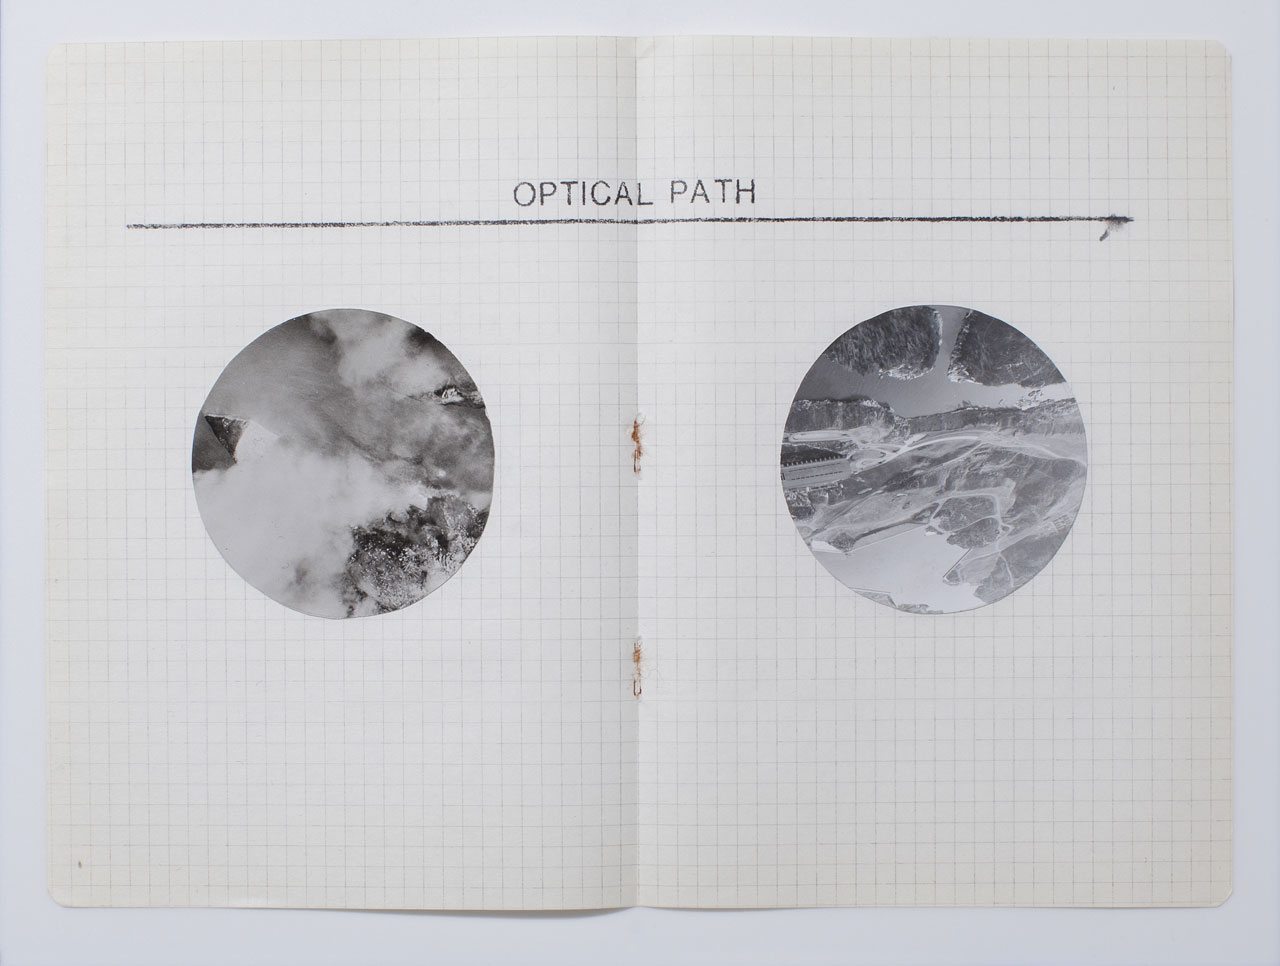 Hajra Waheed, KH-21, Notes 17/32, 2014, Cut Photograph, Xylene Transfer & Graphite on Paper. Image courtesy the artist.